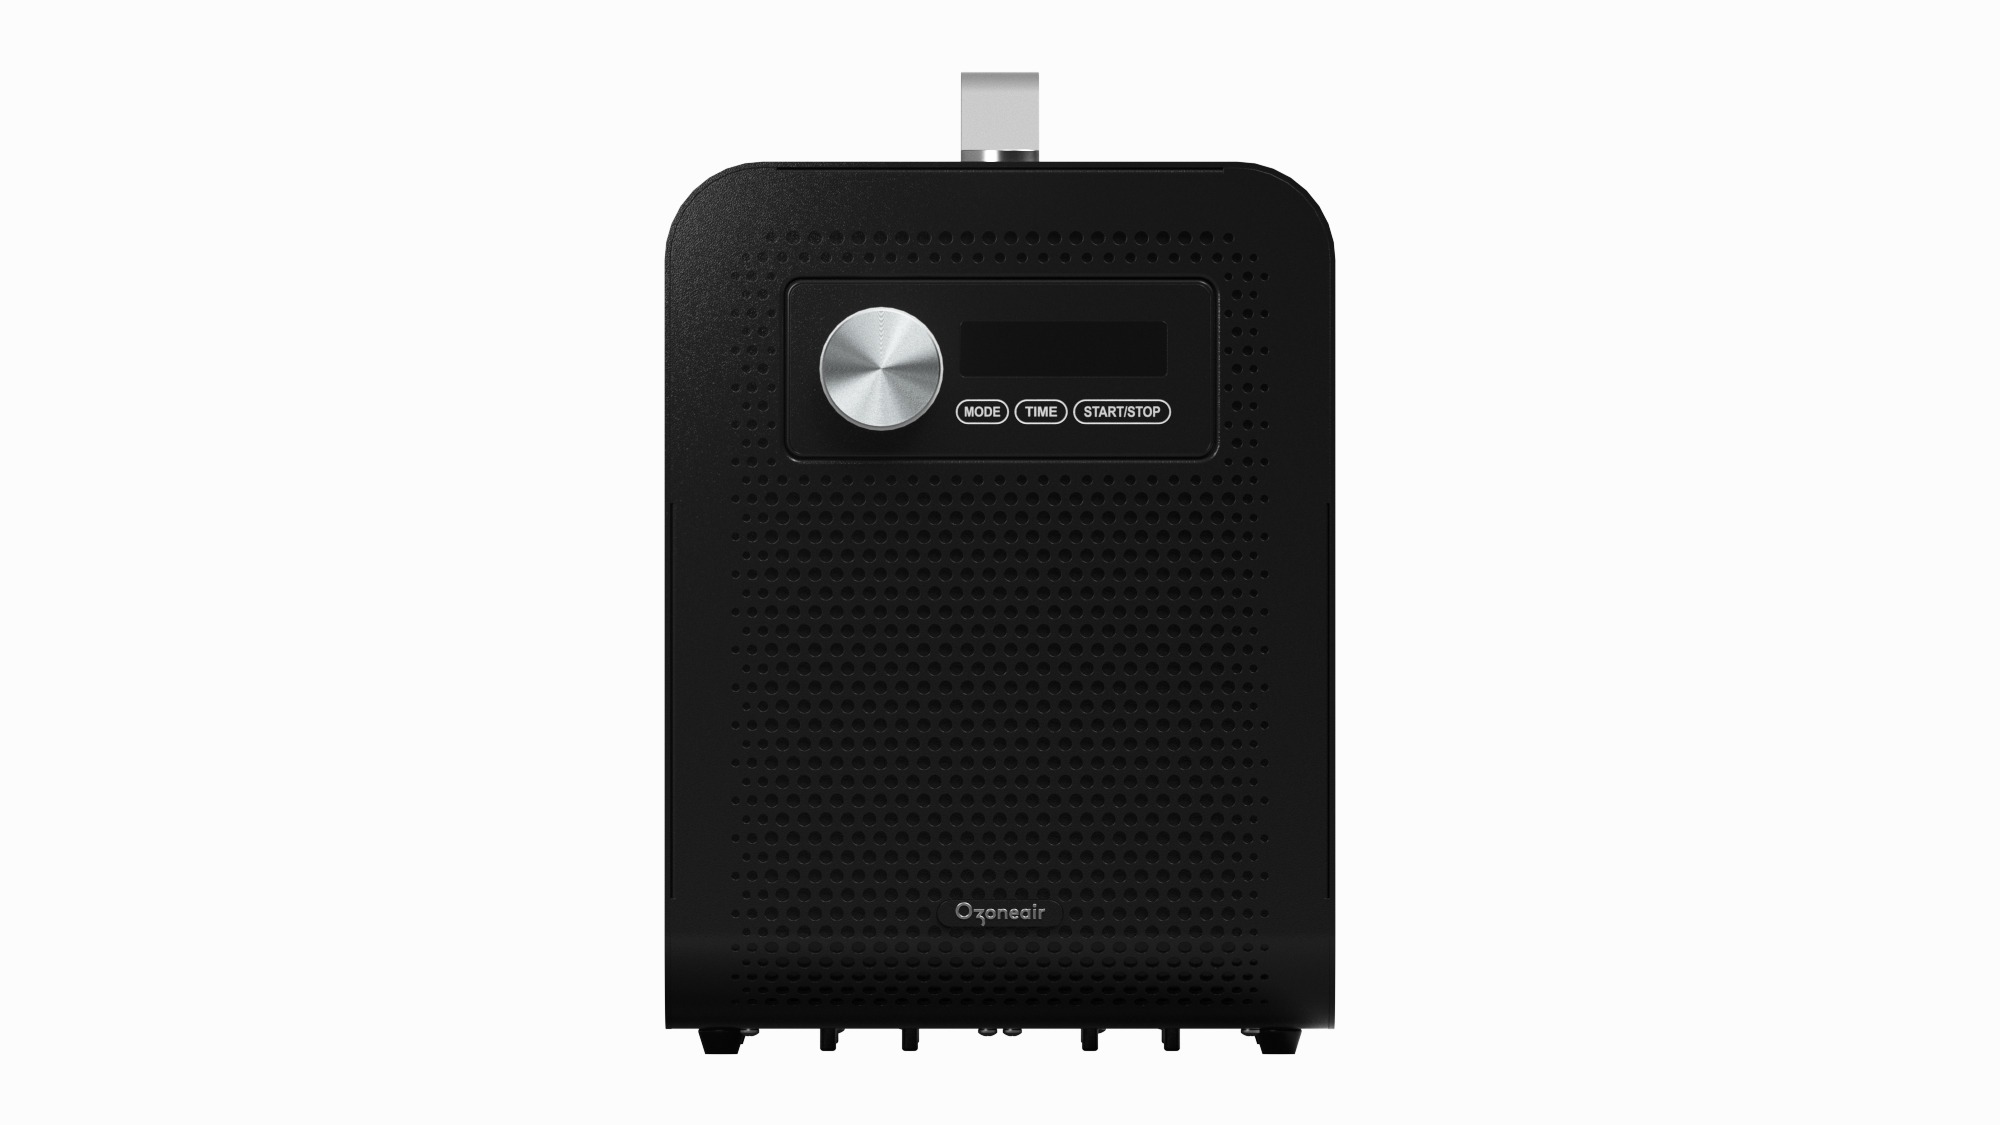 Ozoneair PRO front